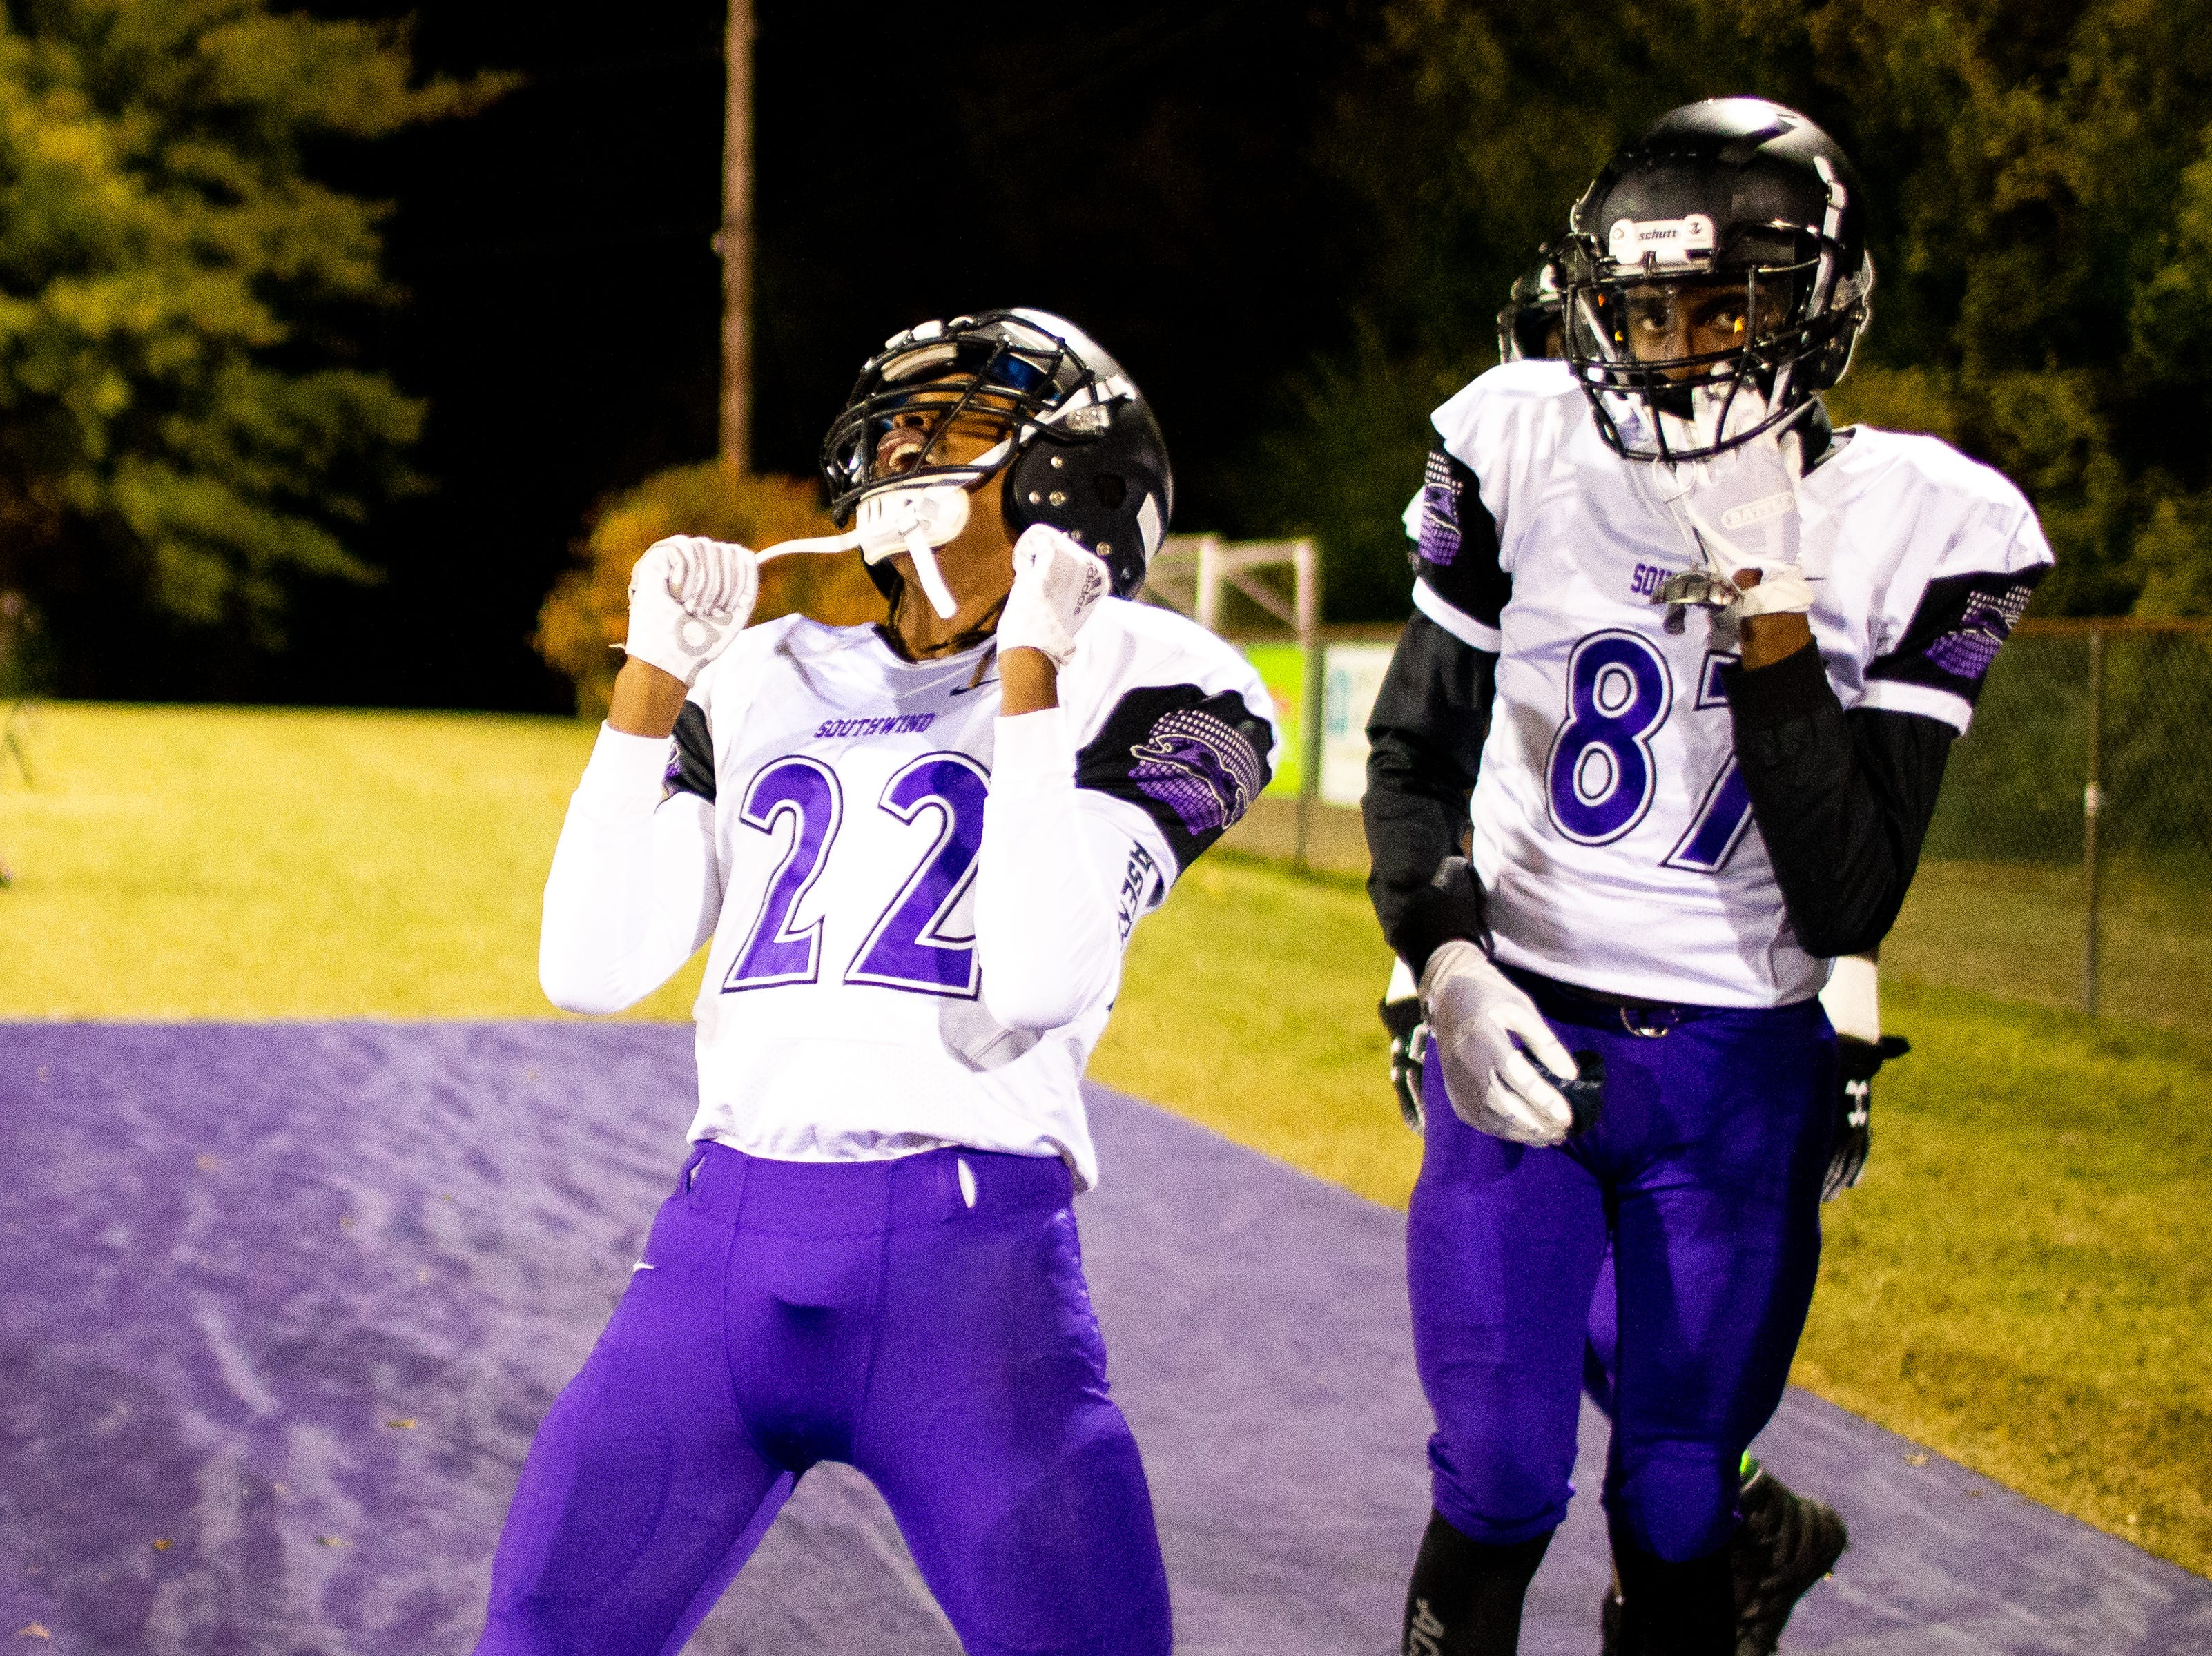 Deqwan tank Bevill (22) of Southwind celebrates during the second half at Clarksville High Friday, Nov. 2, 2018, in Clarksville, Tenn.